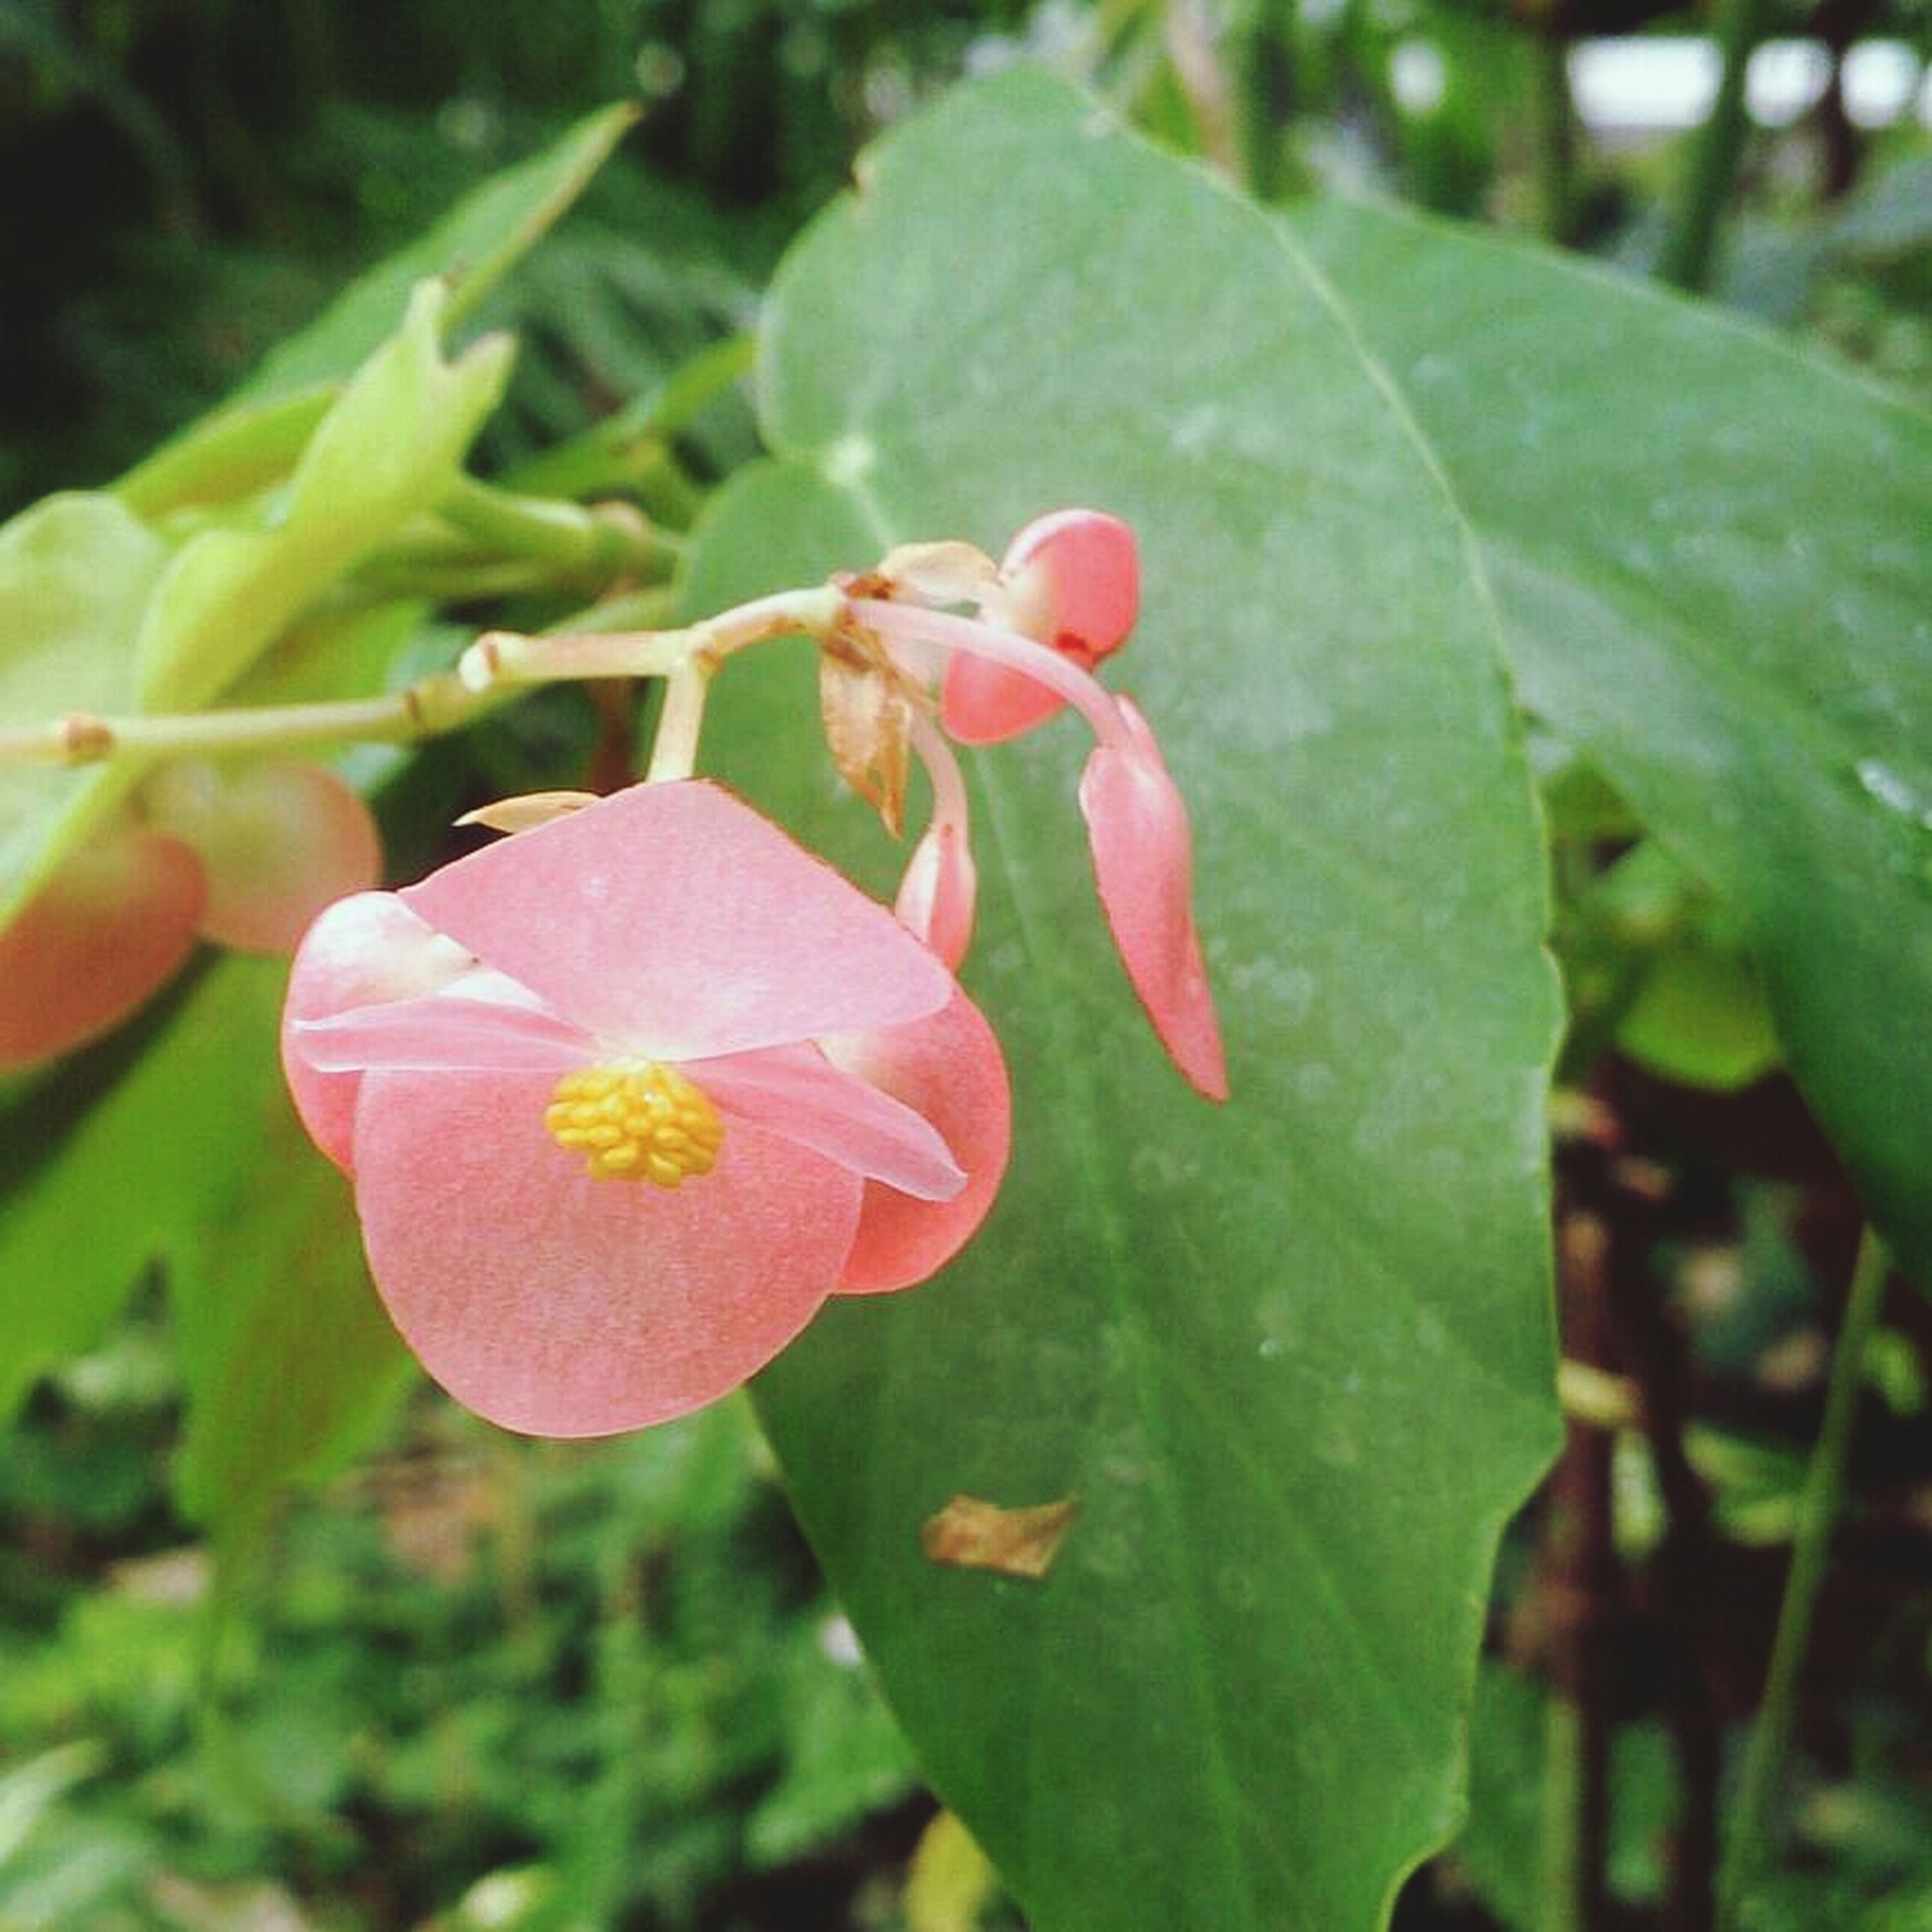 flower, freshness, growth, leaf, petal, fragility, focus on foreground, close-up, beauty in nature, plant, flower head, nature, green color, red, blooming, bud, selective focus, day, outdoors, no people